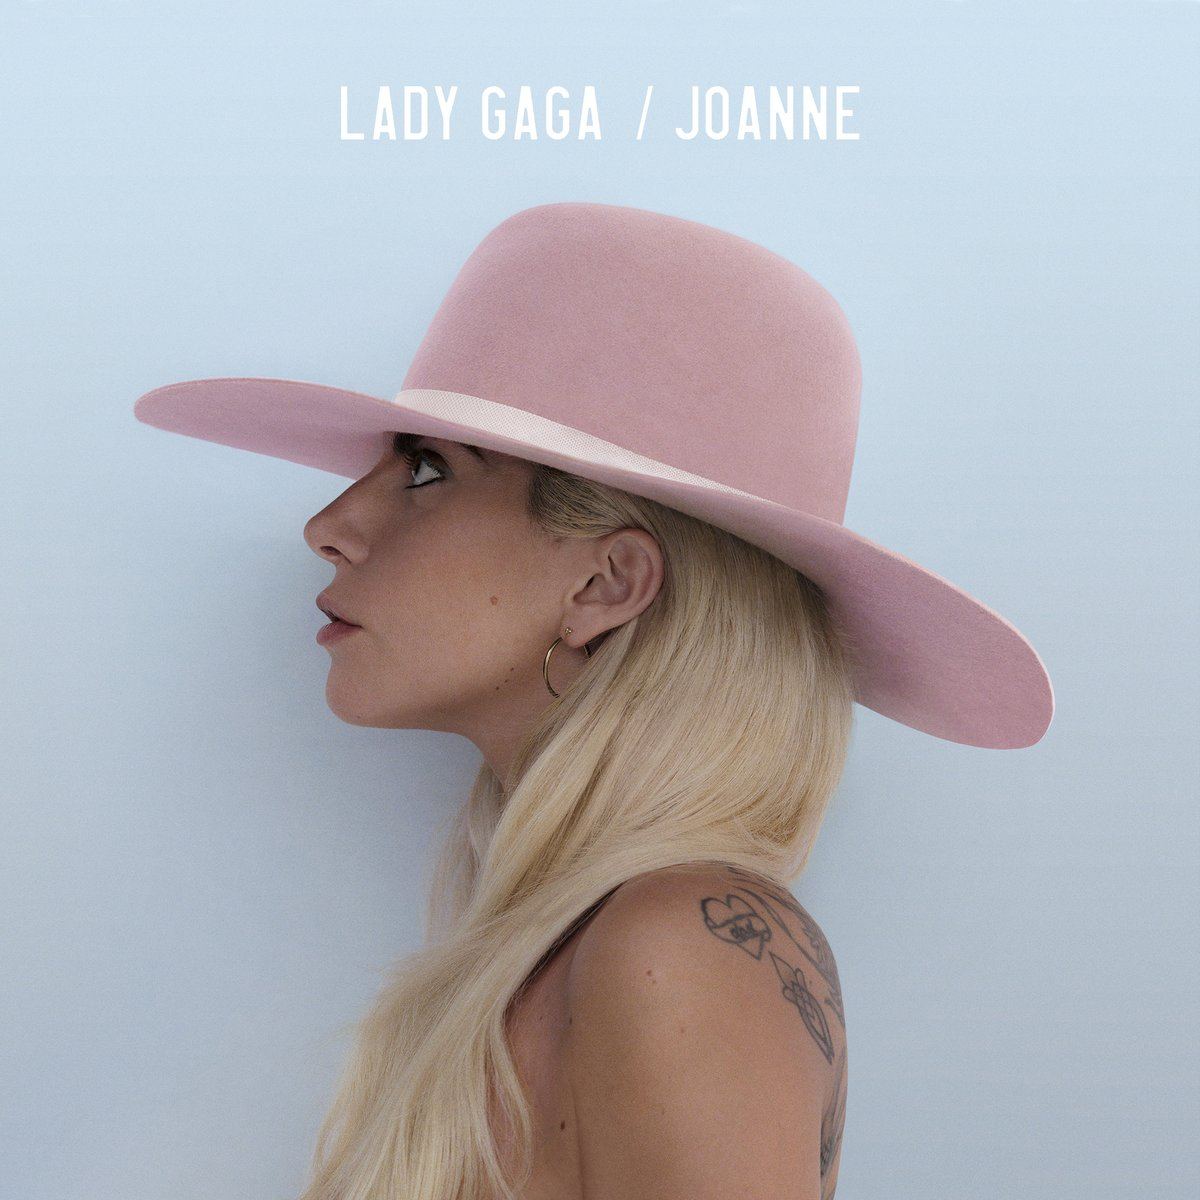 Lady Gaga Reveals Artwork For New Album JOANNE image